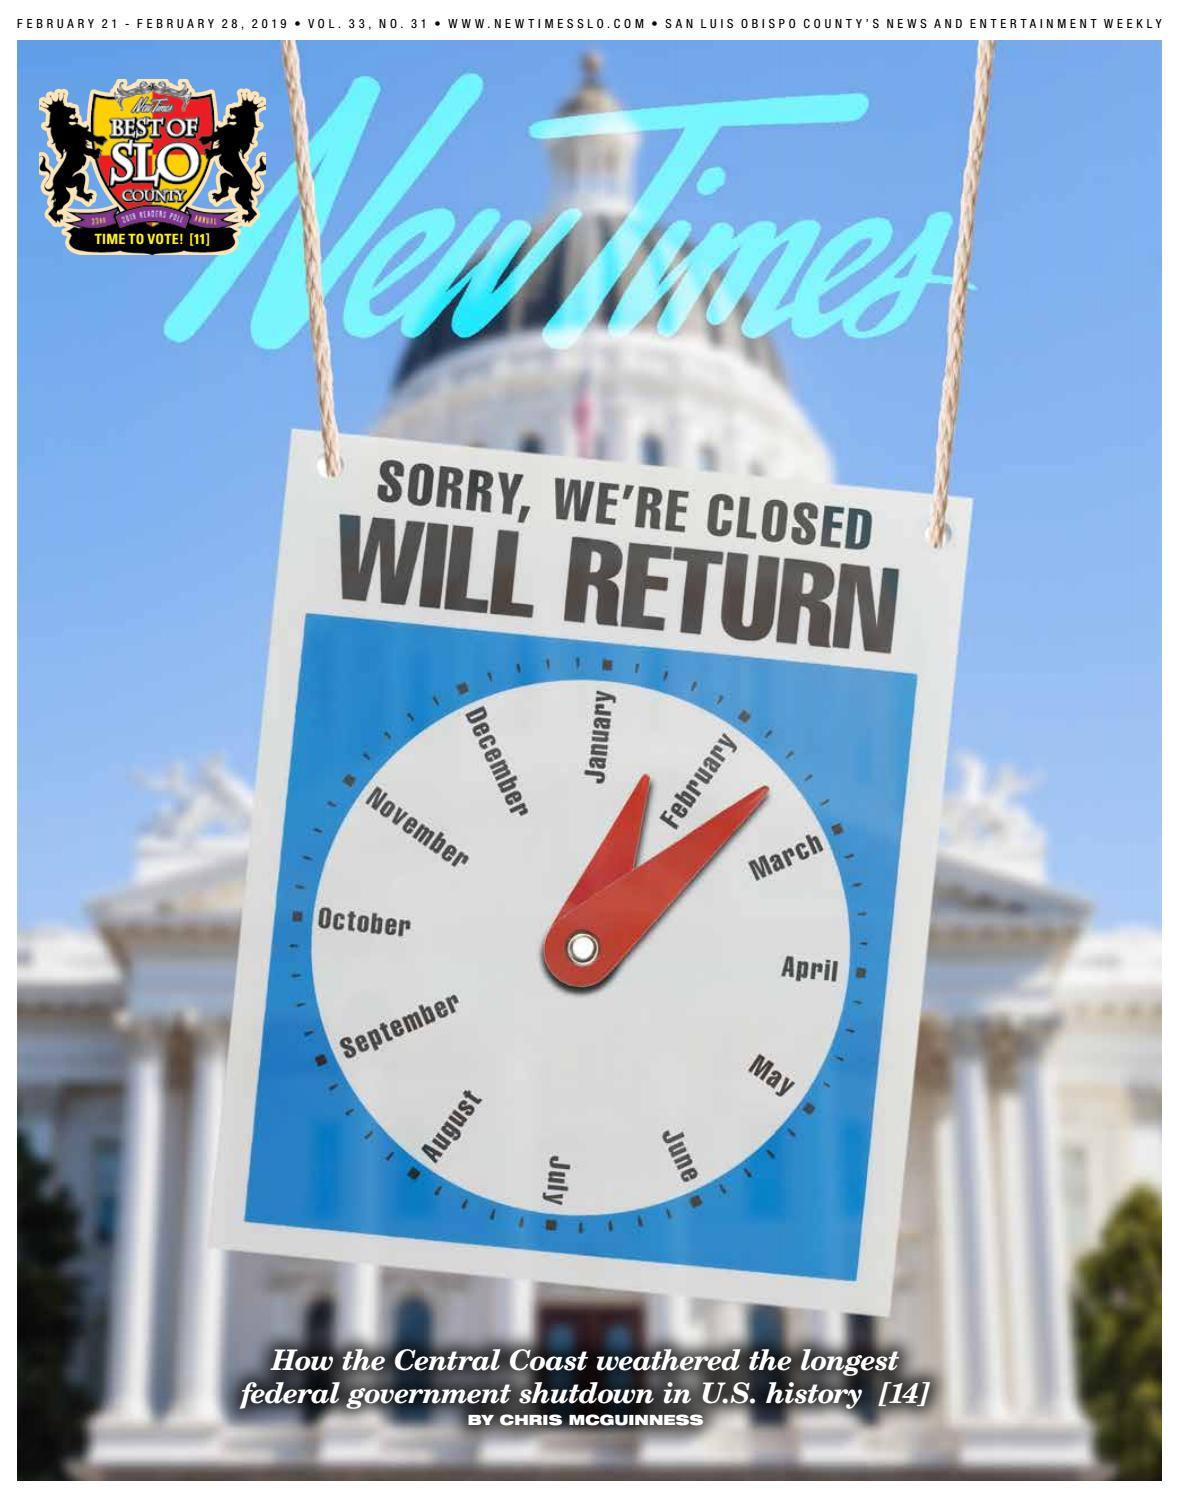 reputable site ee029 a286a New Times, Feb. 21, 2019 by New Times, San Luis Obispo - issuu